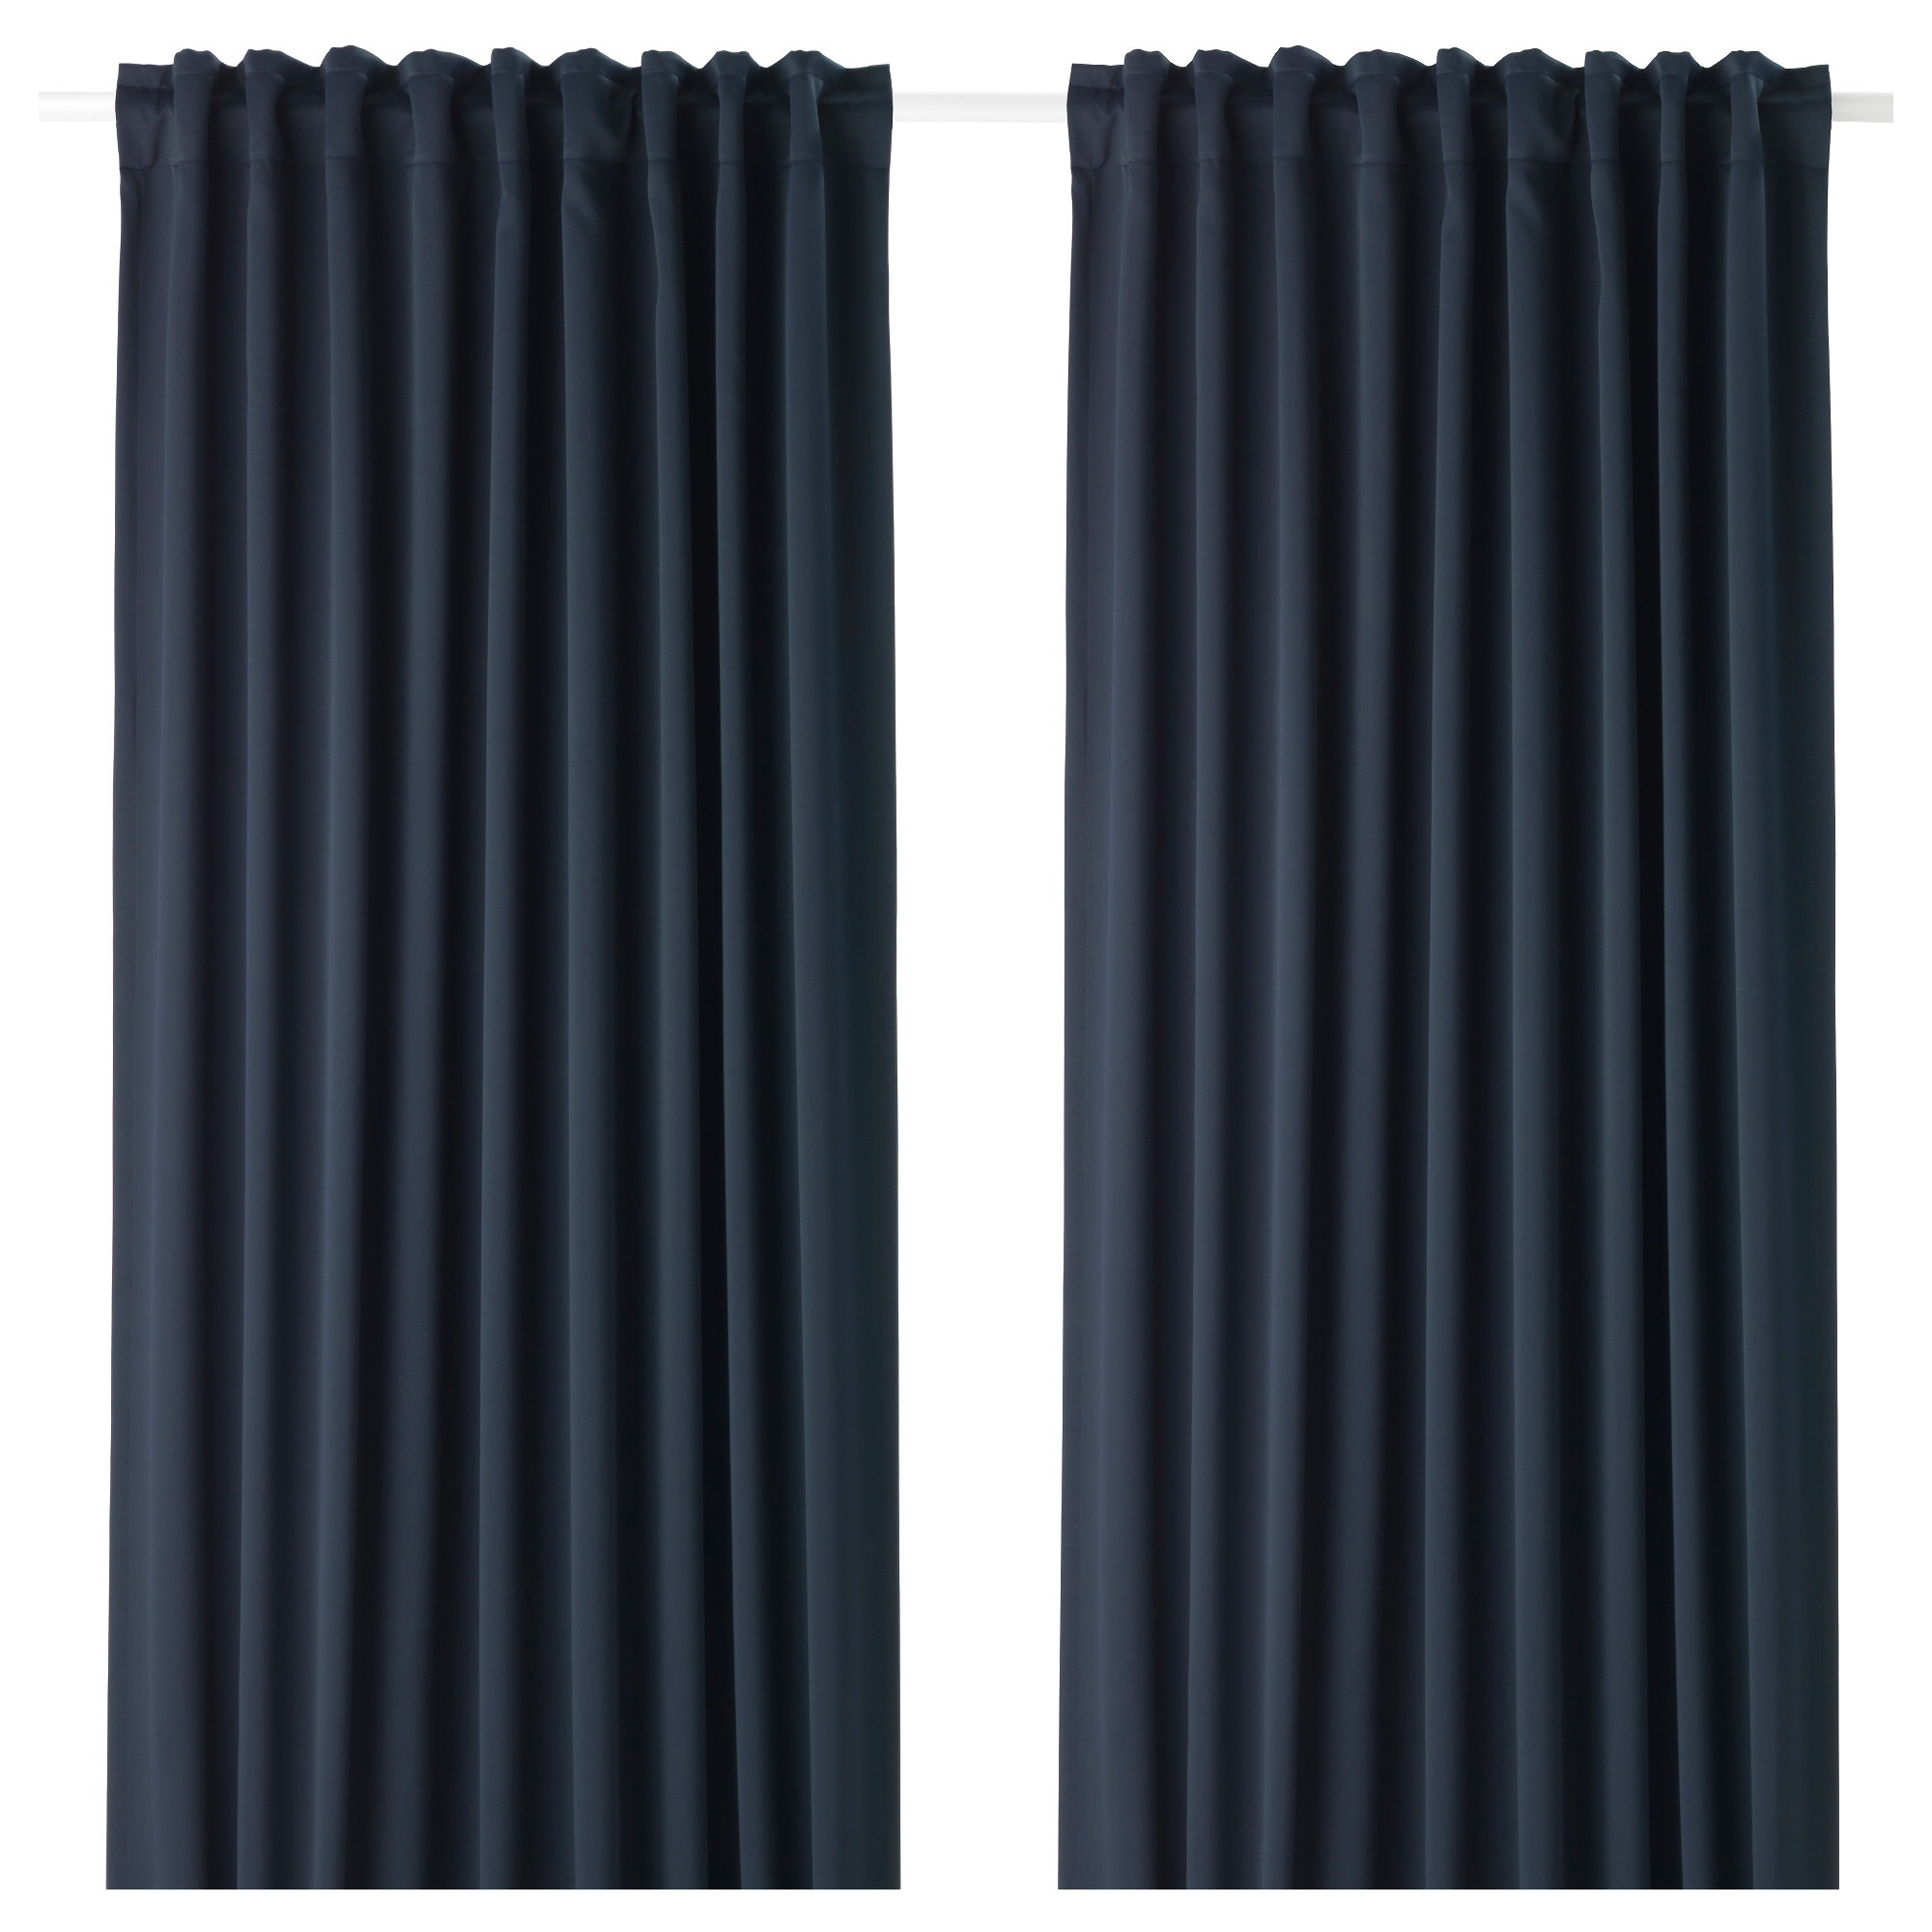 Grey curtains living room - Majgull Blackout Curtains 1 Pair Dark Blue Length 98 Width 57